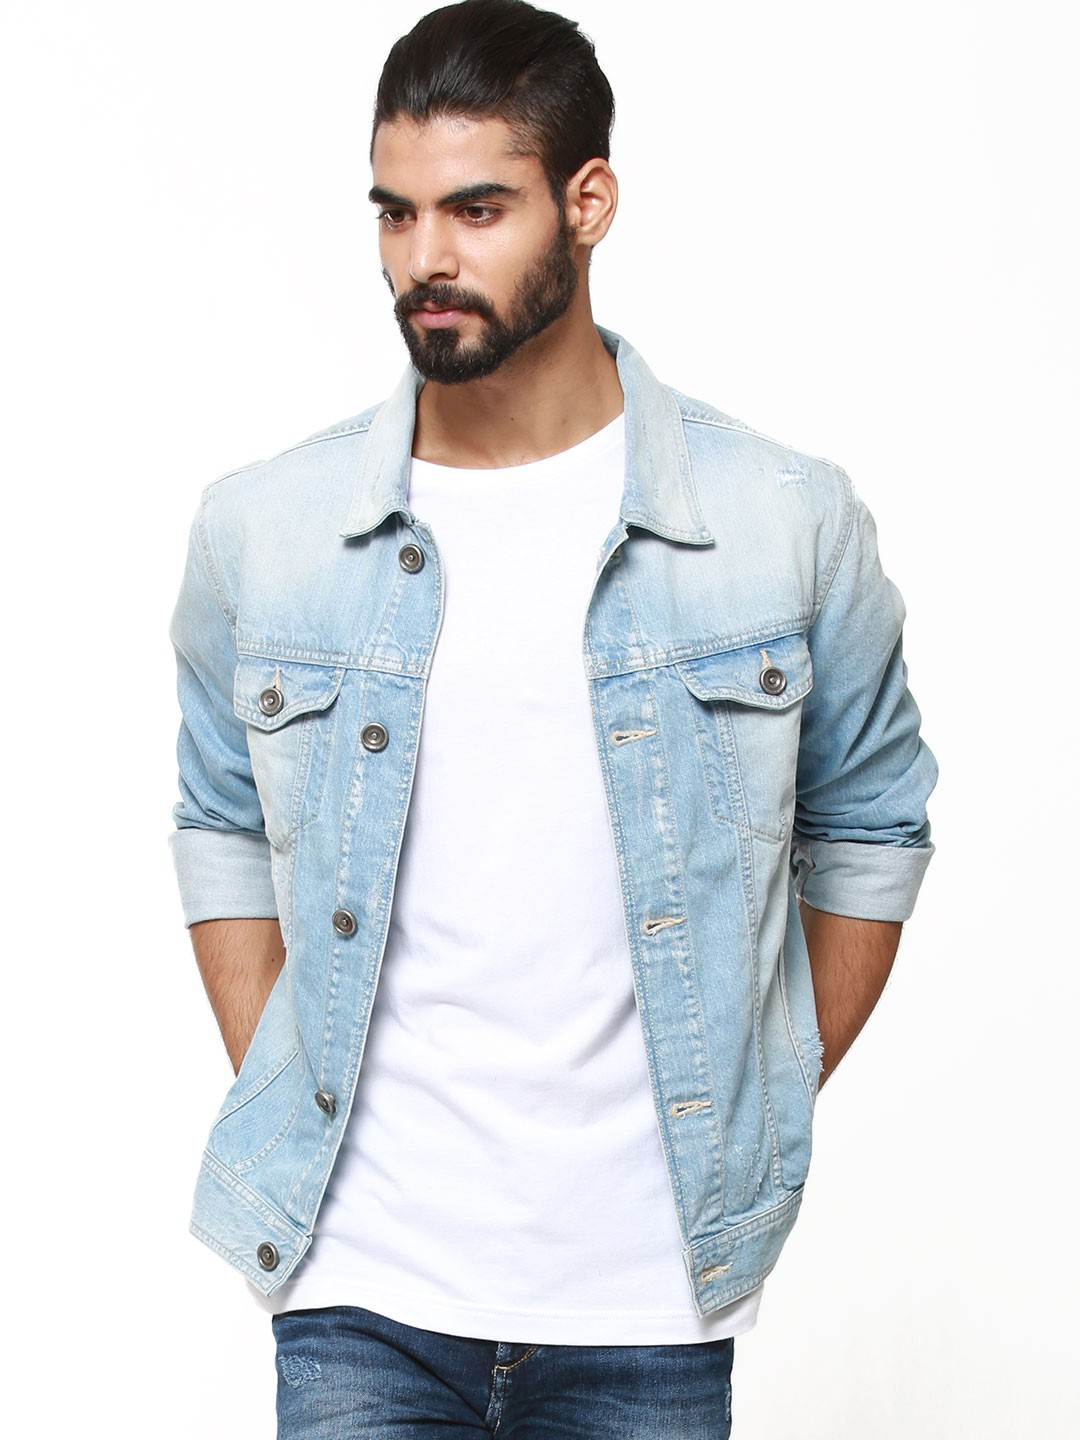 Buy denim jacket india – New Fashion Photo Blog